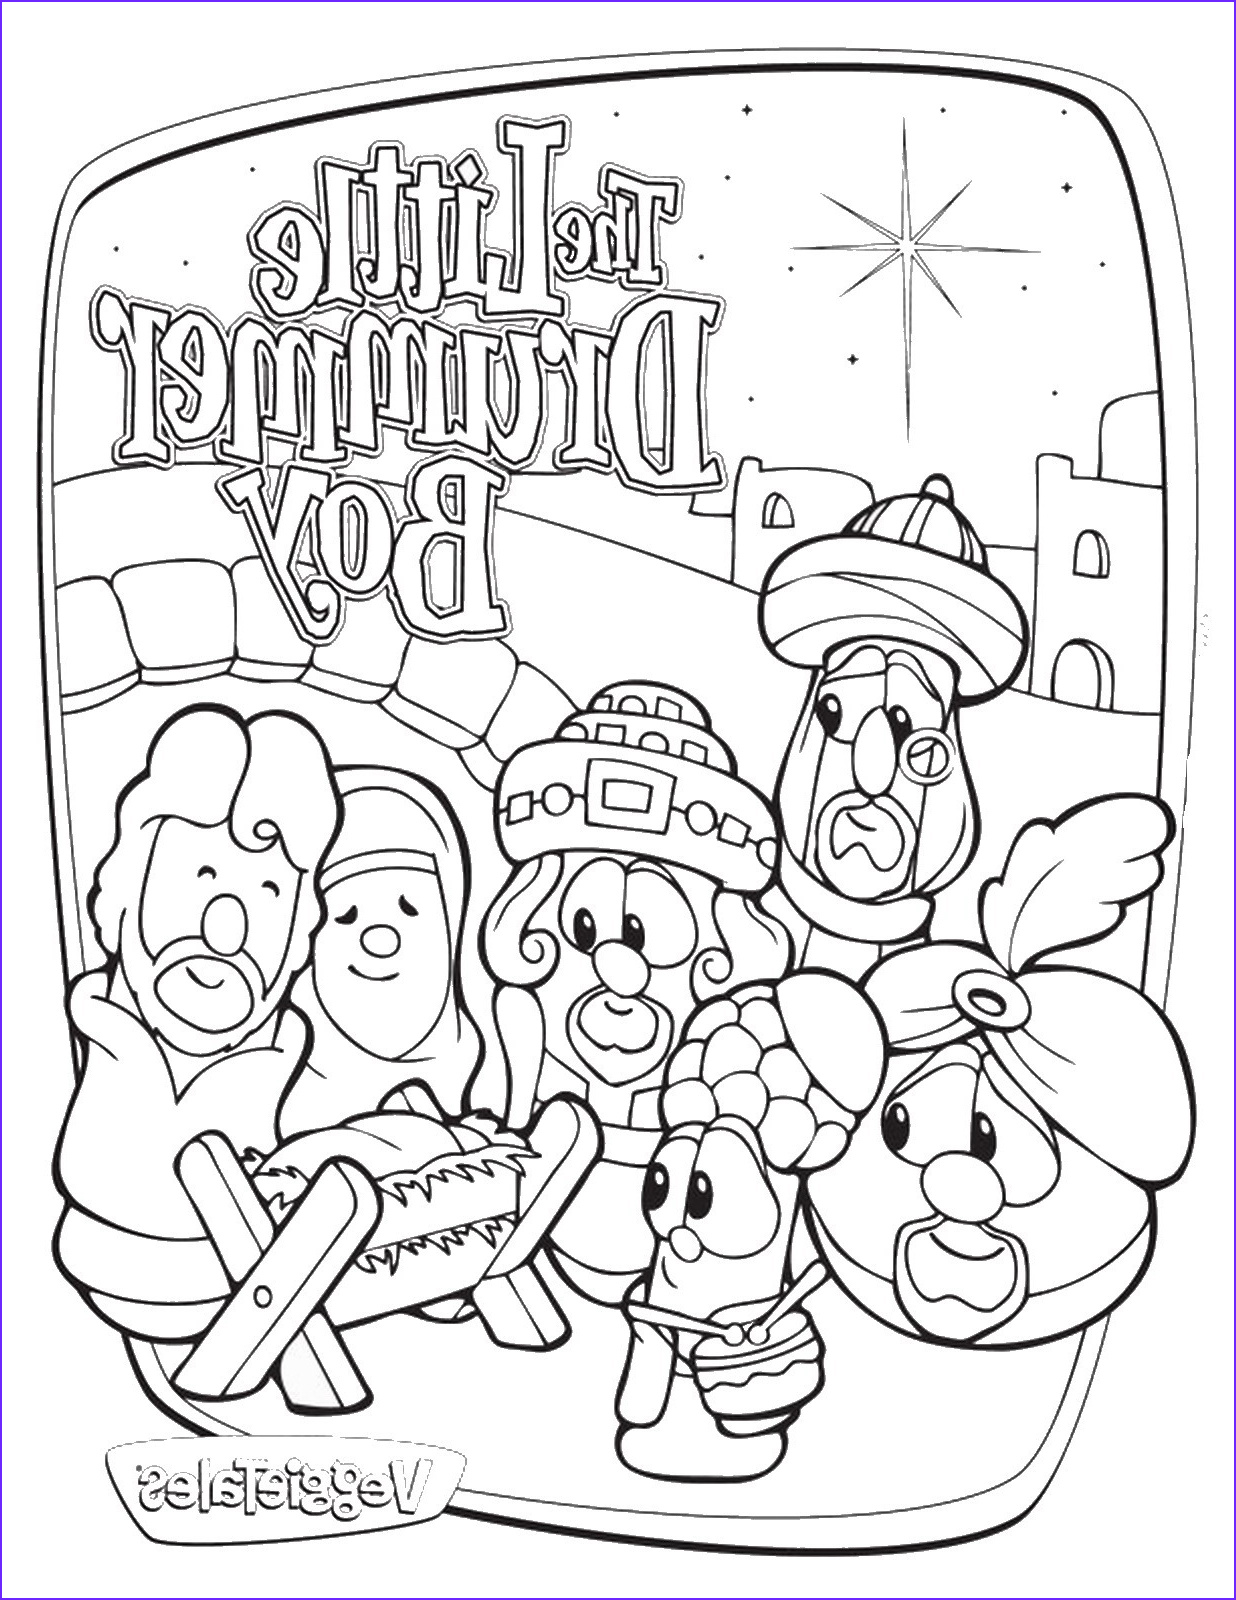 Veggie Tales Coloring Book Luxury Stock Veggie Tales Coloring Pages